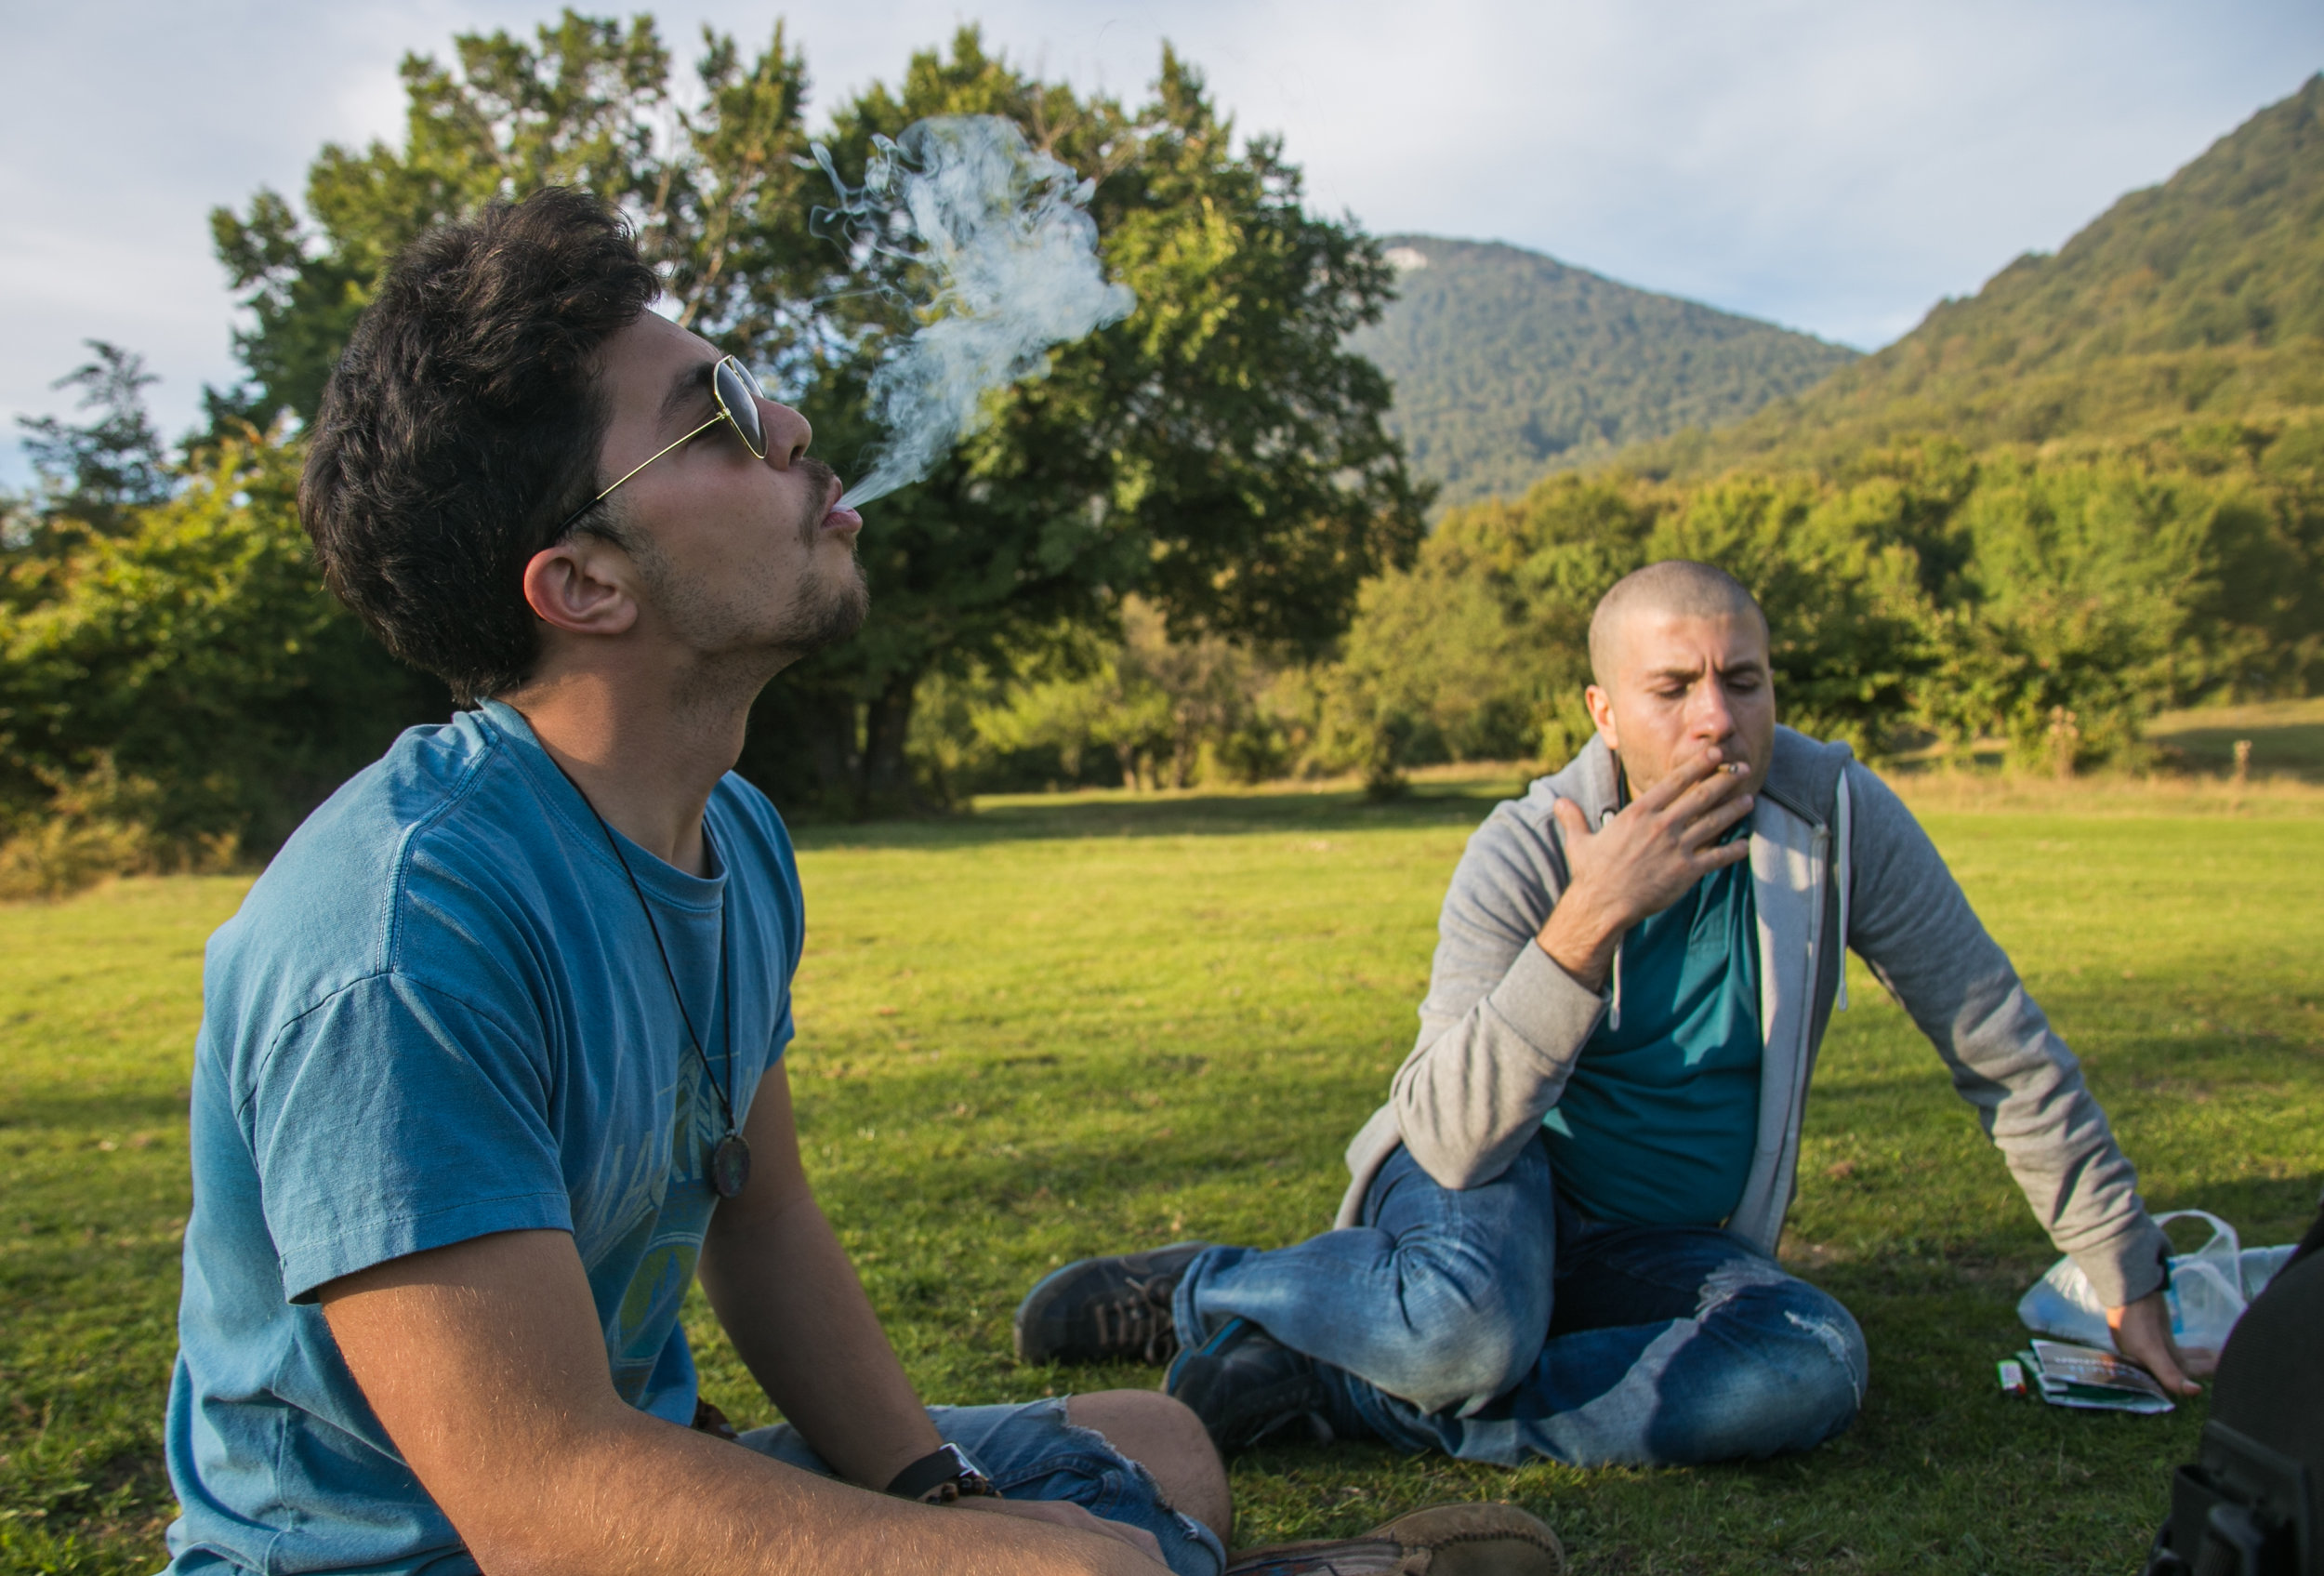 Marco and Mo smoking hand-rolled cigarettes atop Dajti Mountain.